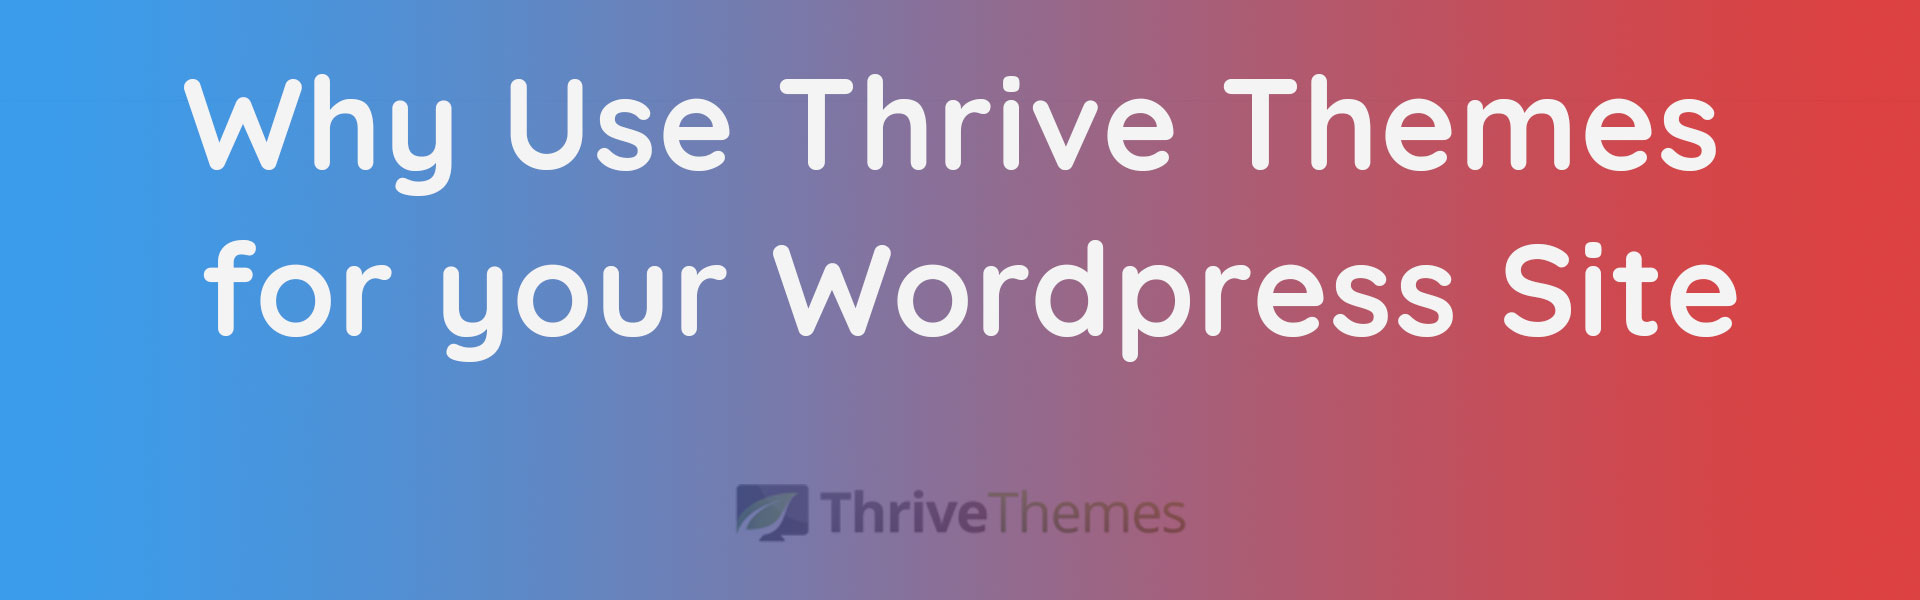 What Is A Free Alternative To Thrive Themes